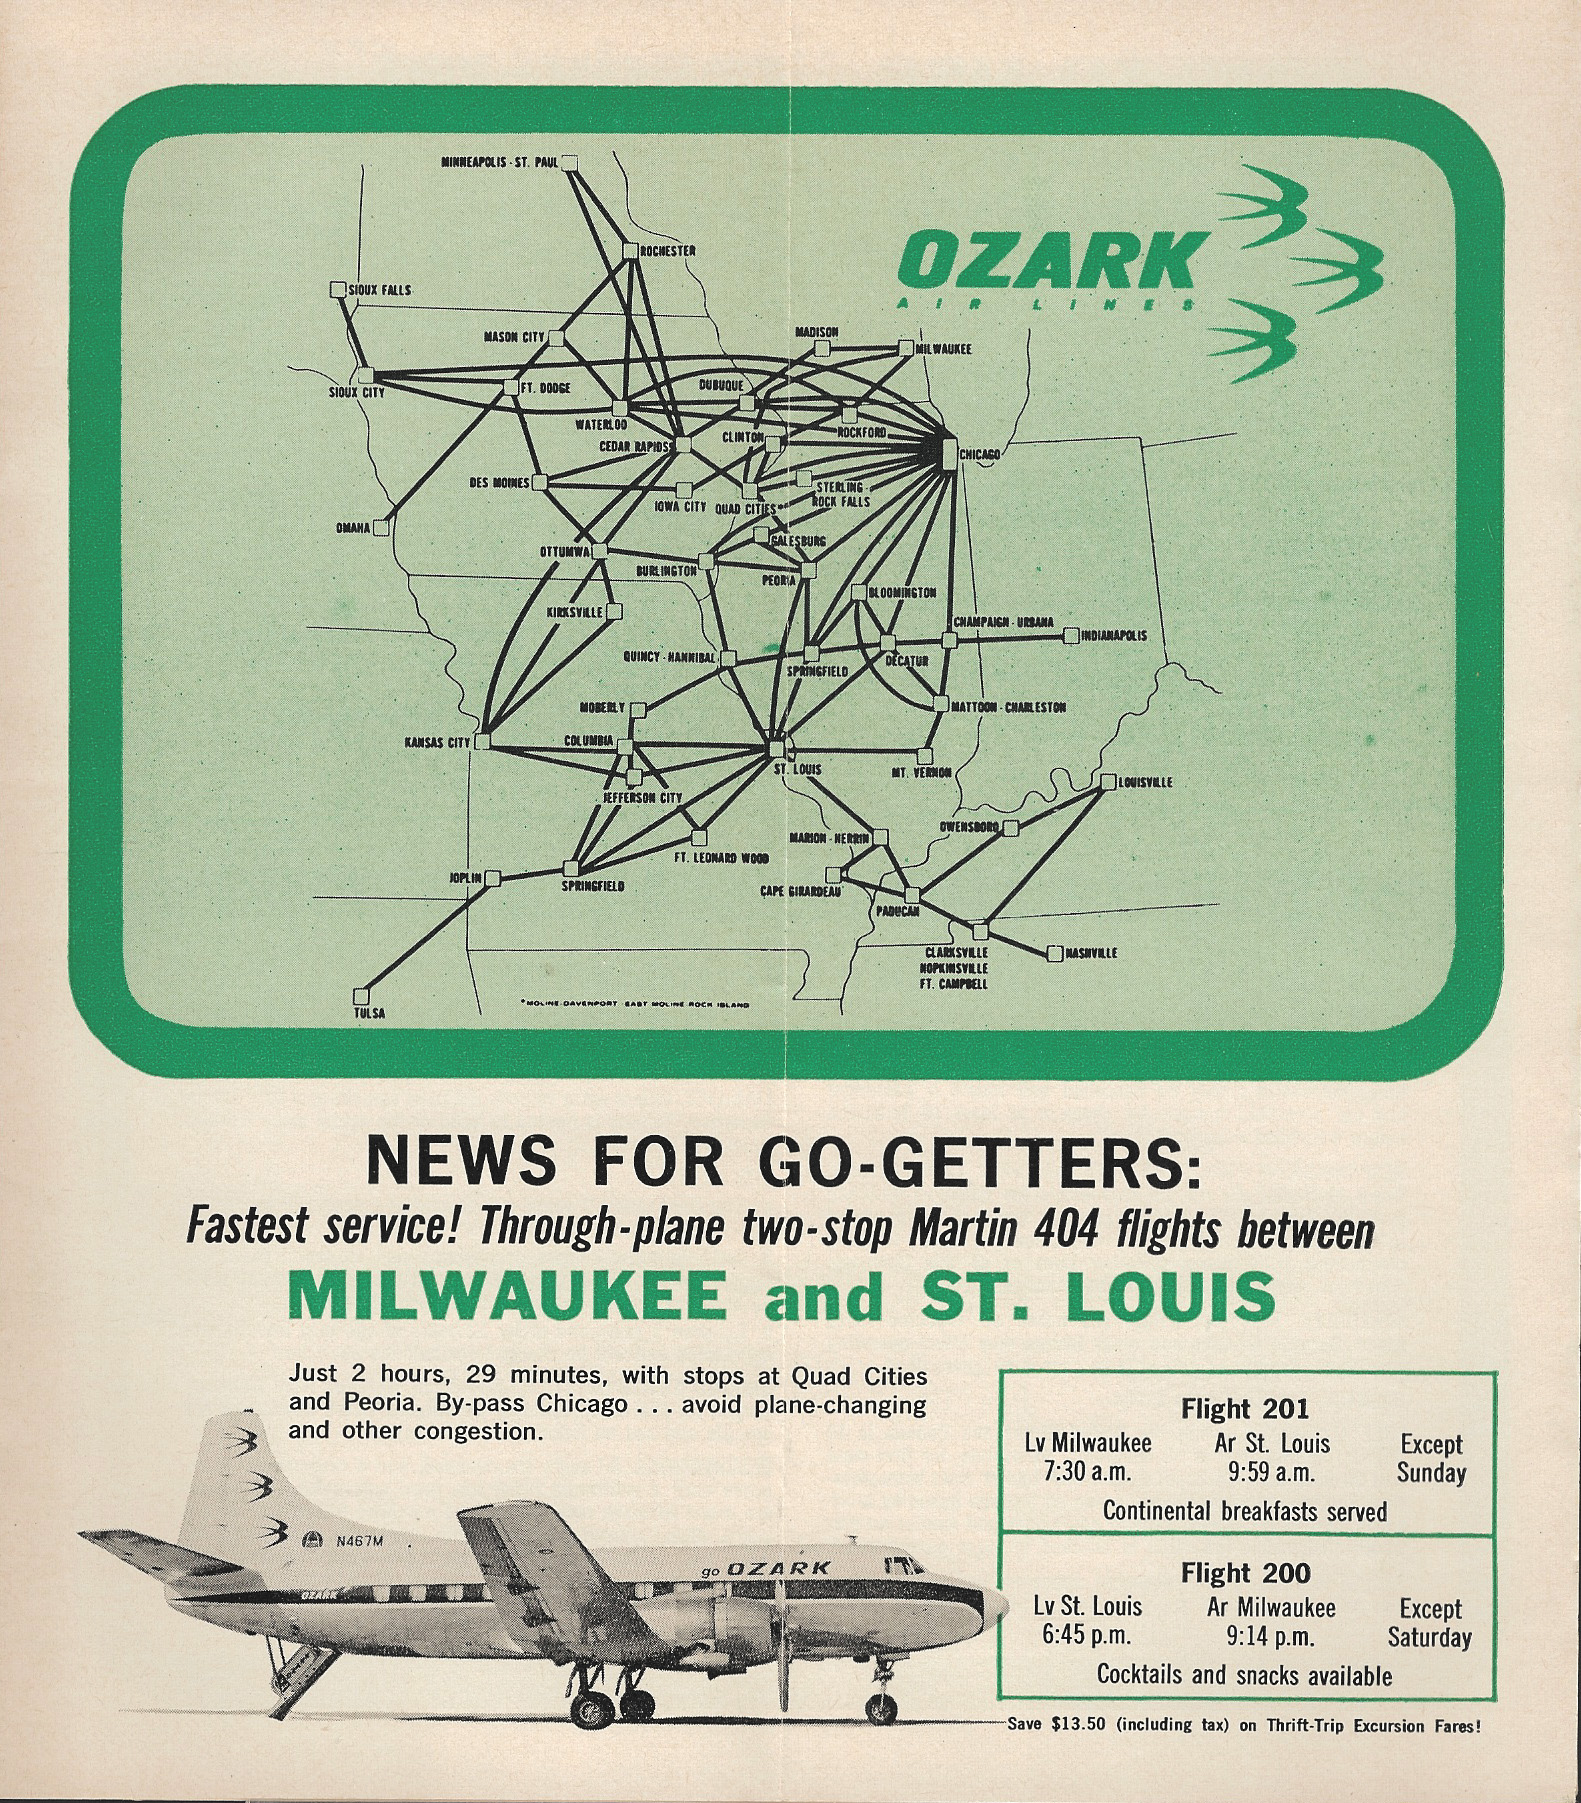 Ozark Airlines | World Airline News